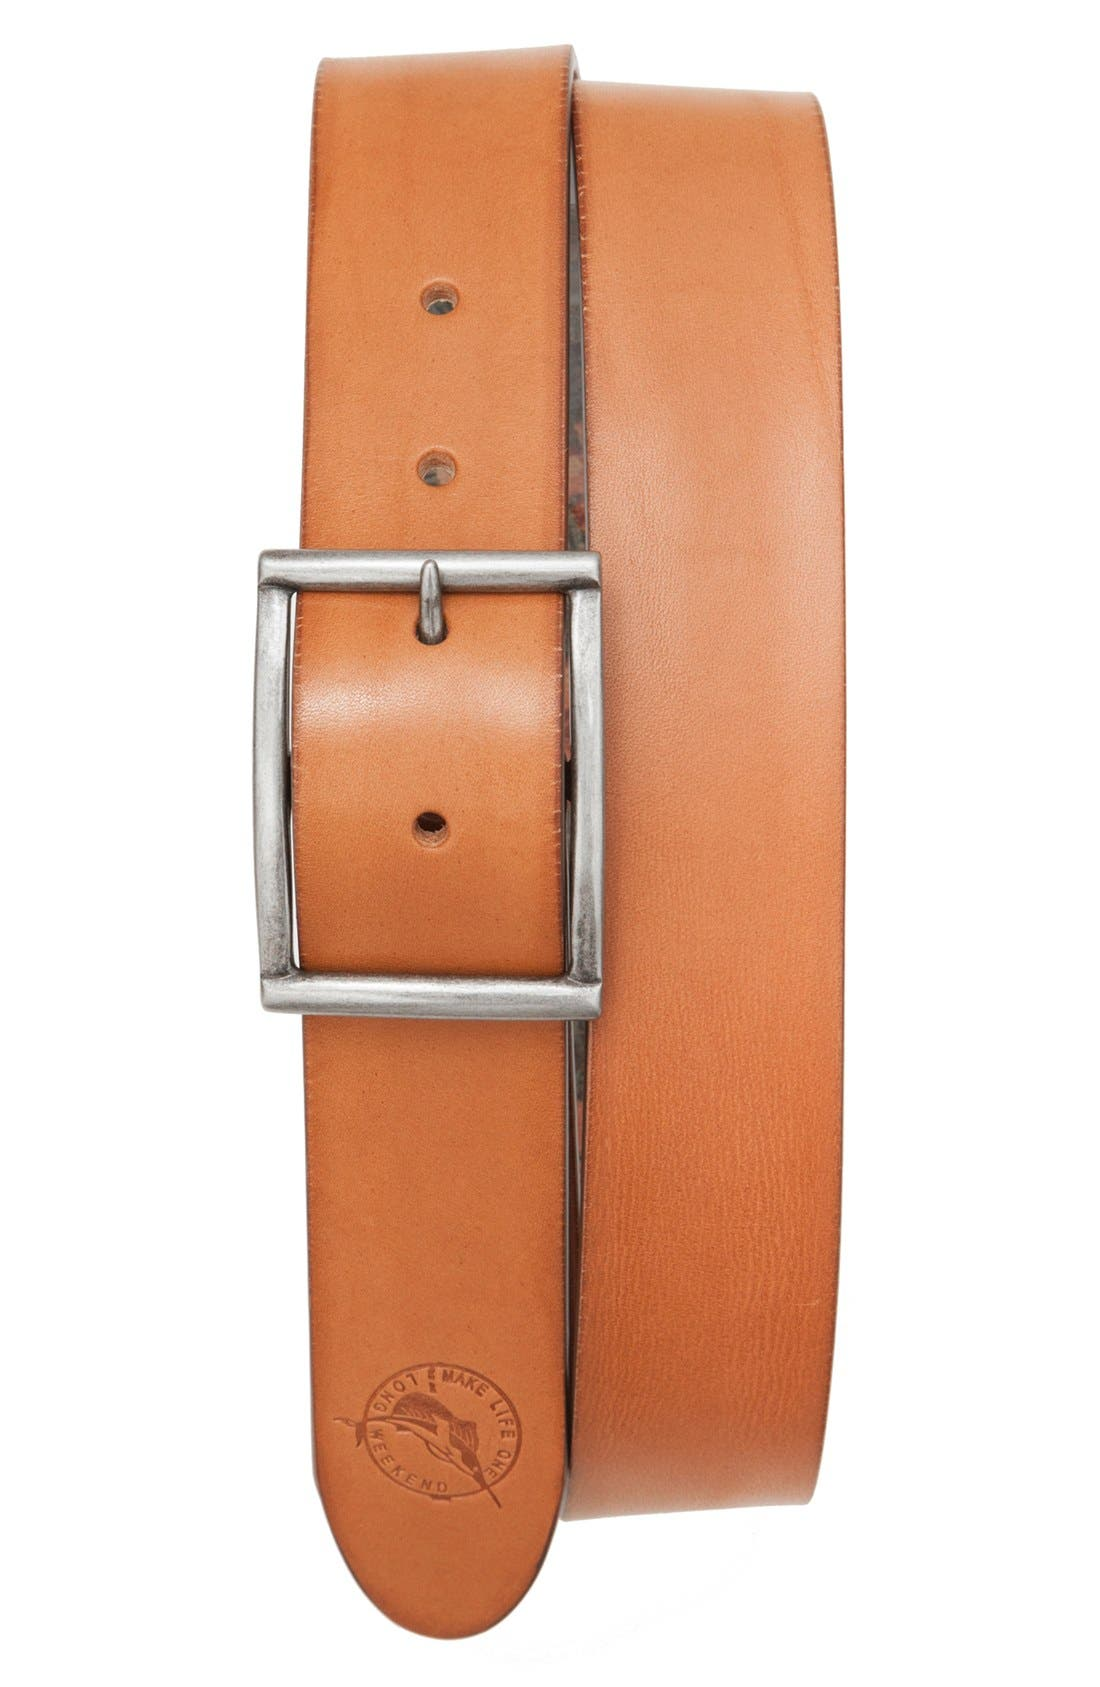 TOMMY BAHAMA Reversible Hibiscus Print Leather Belt, Main, color, TAN